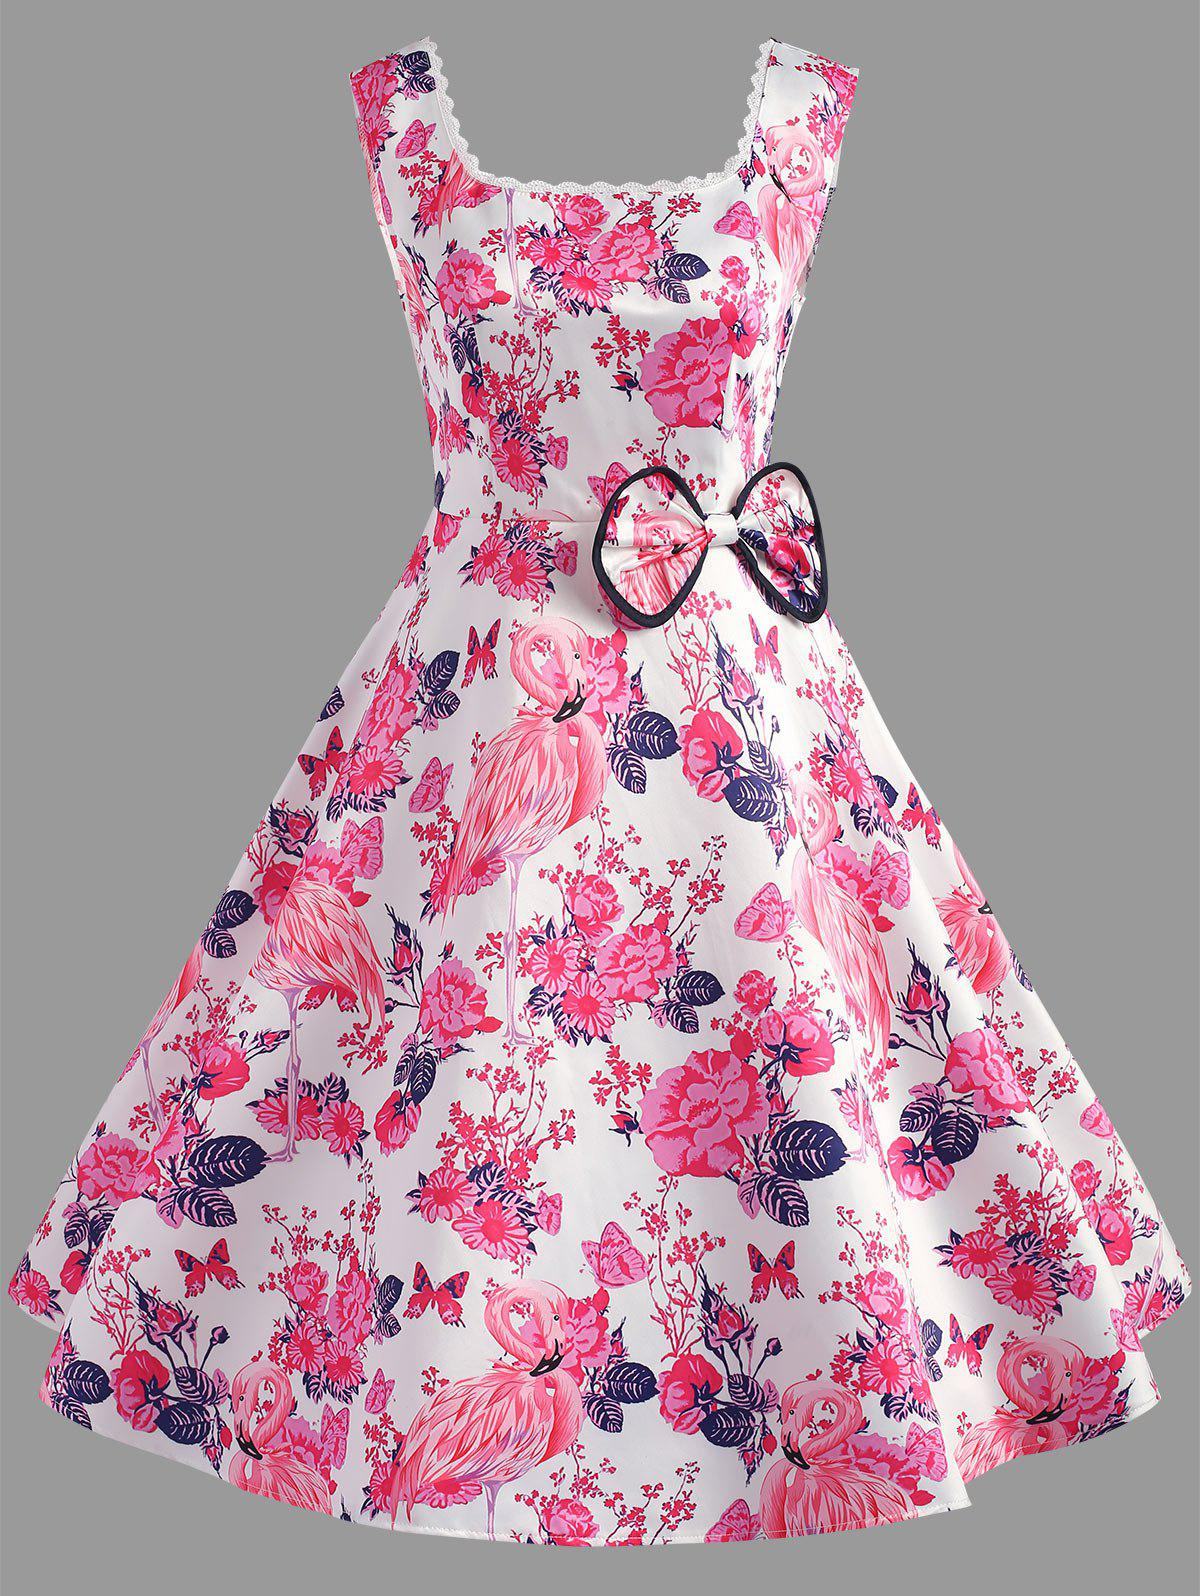 Flamingo Print Bowknot Embellished Dress - DEEP PINK 2XL